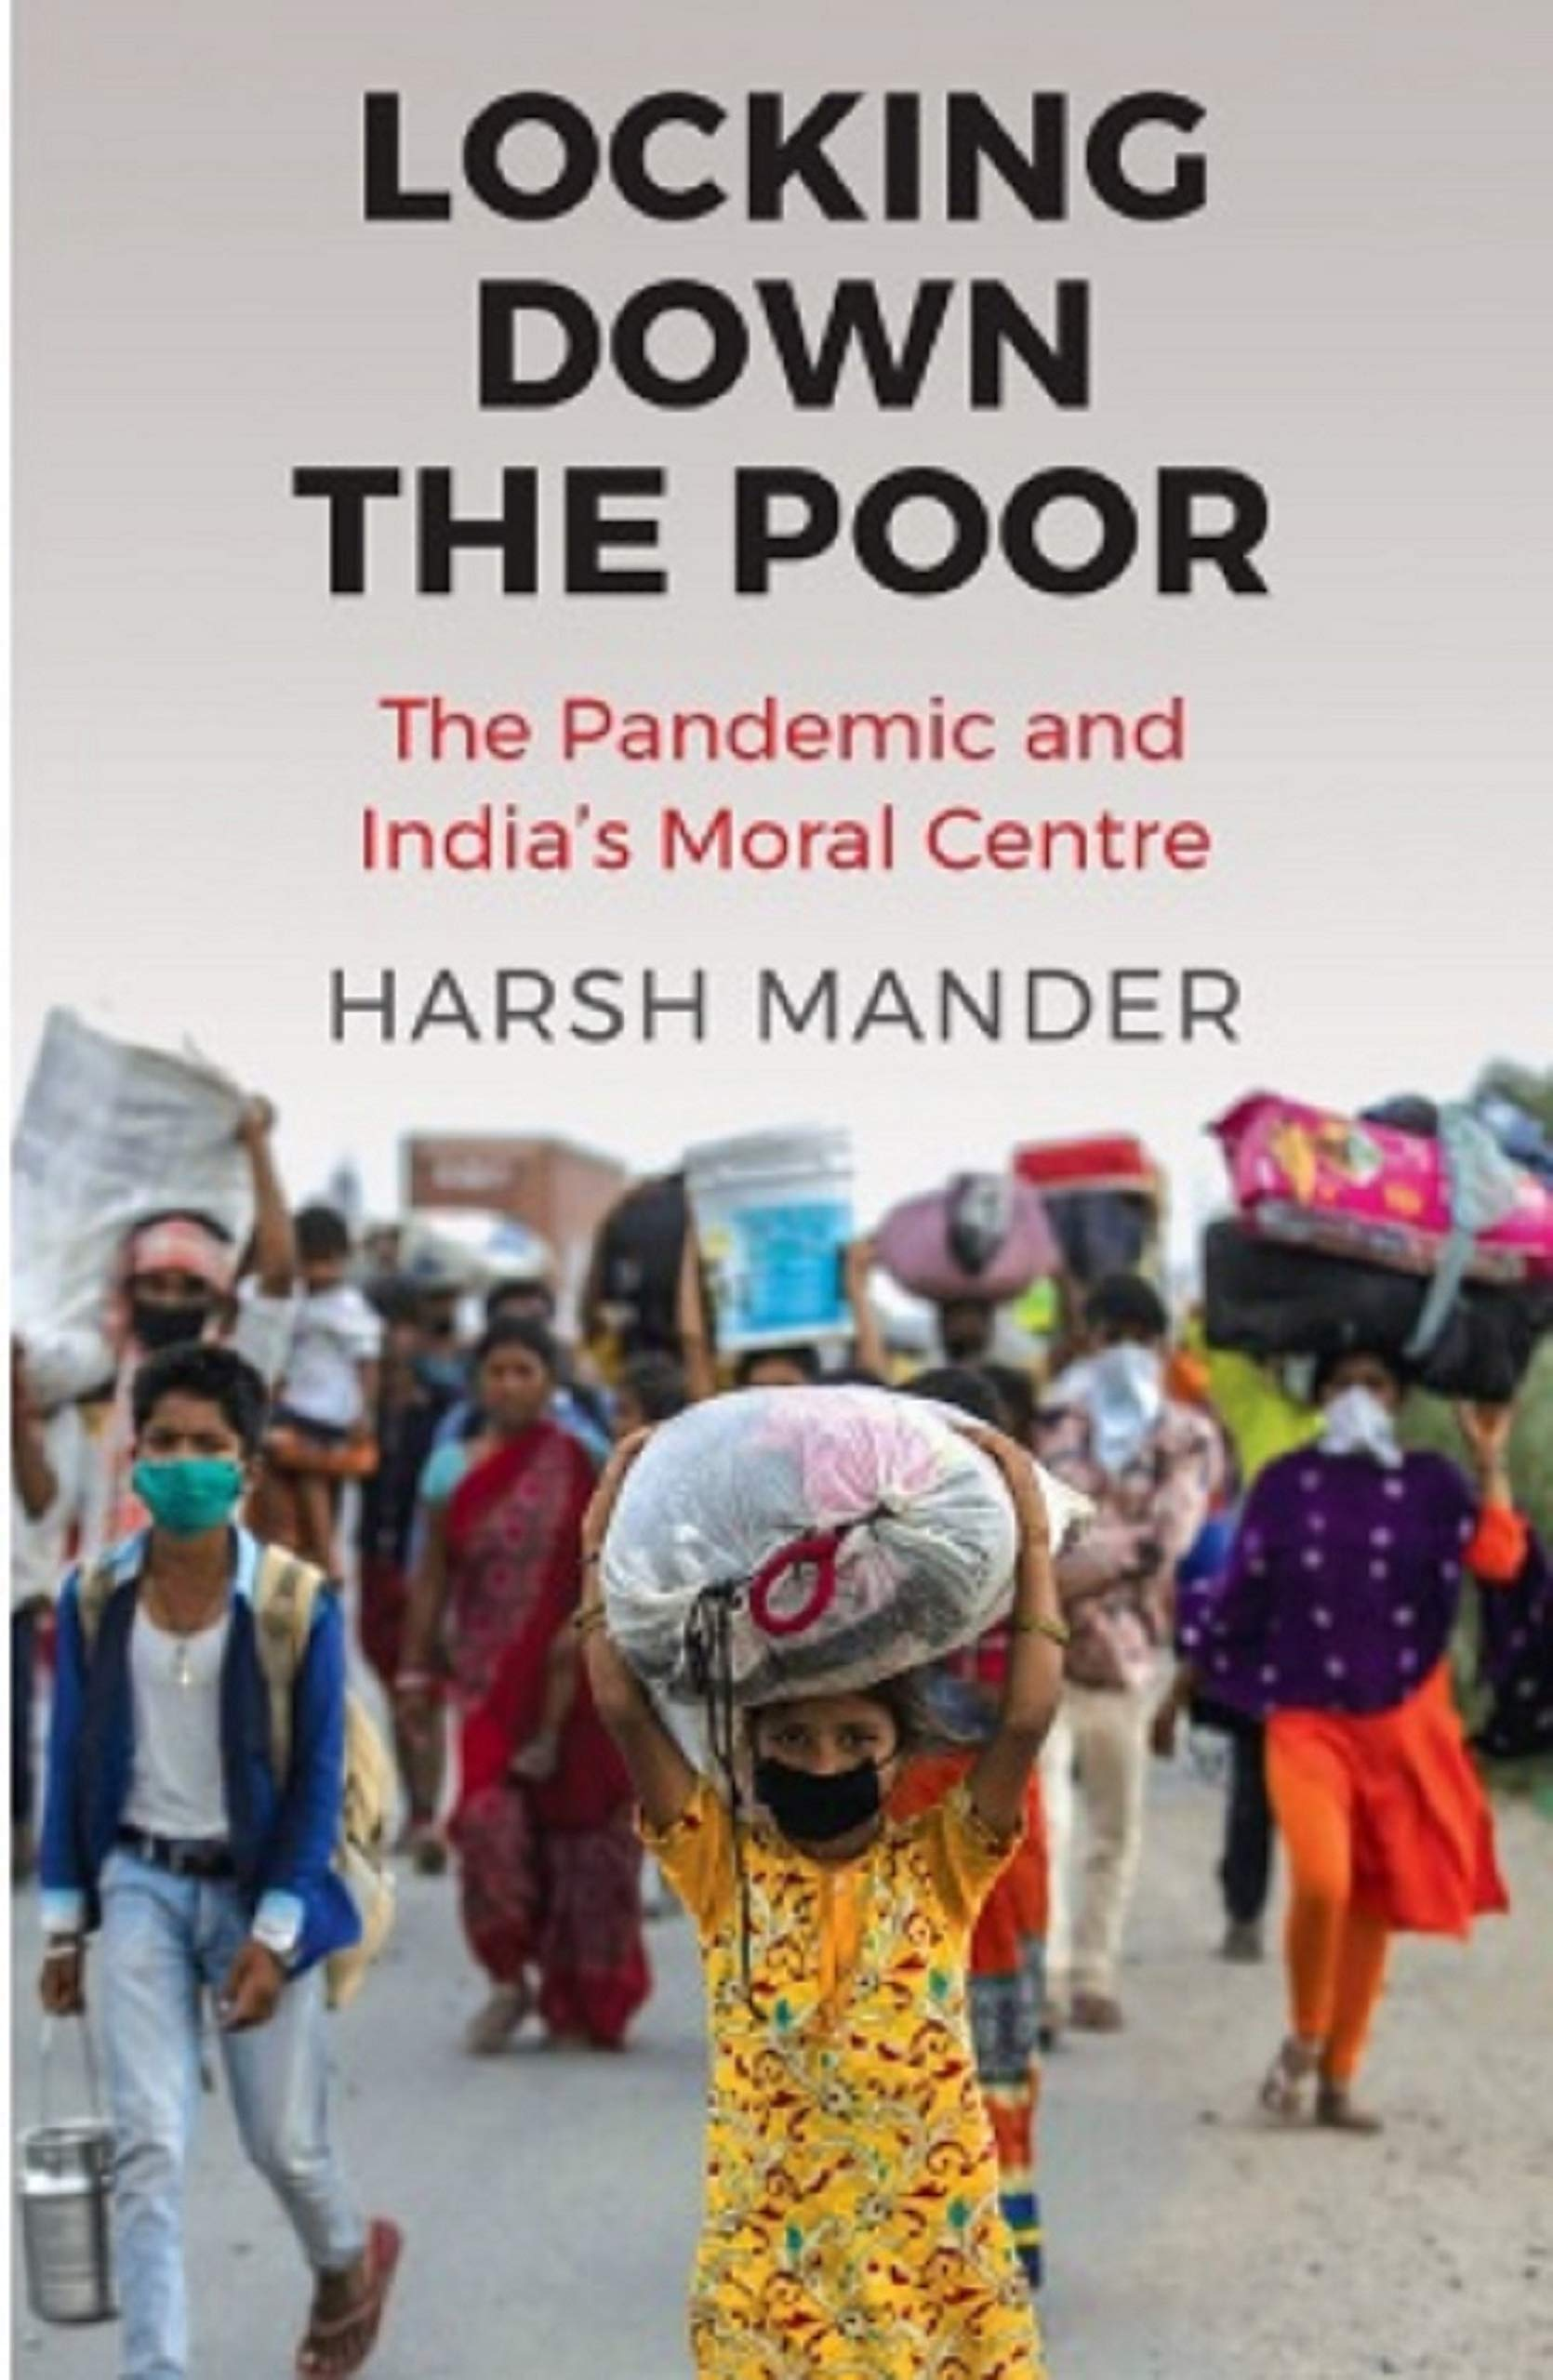 Locking Down the Poor: The Pandemic and India's Moral Centre by Harsh Mander, Speaking Tiger, Rs 399